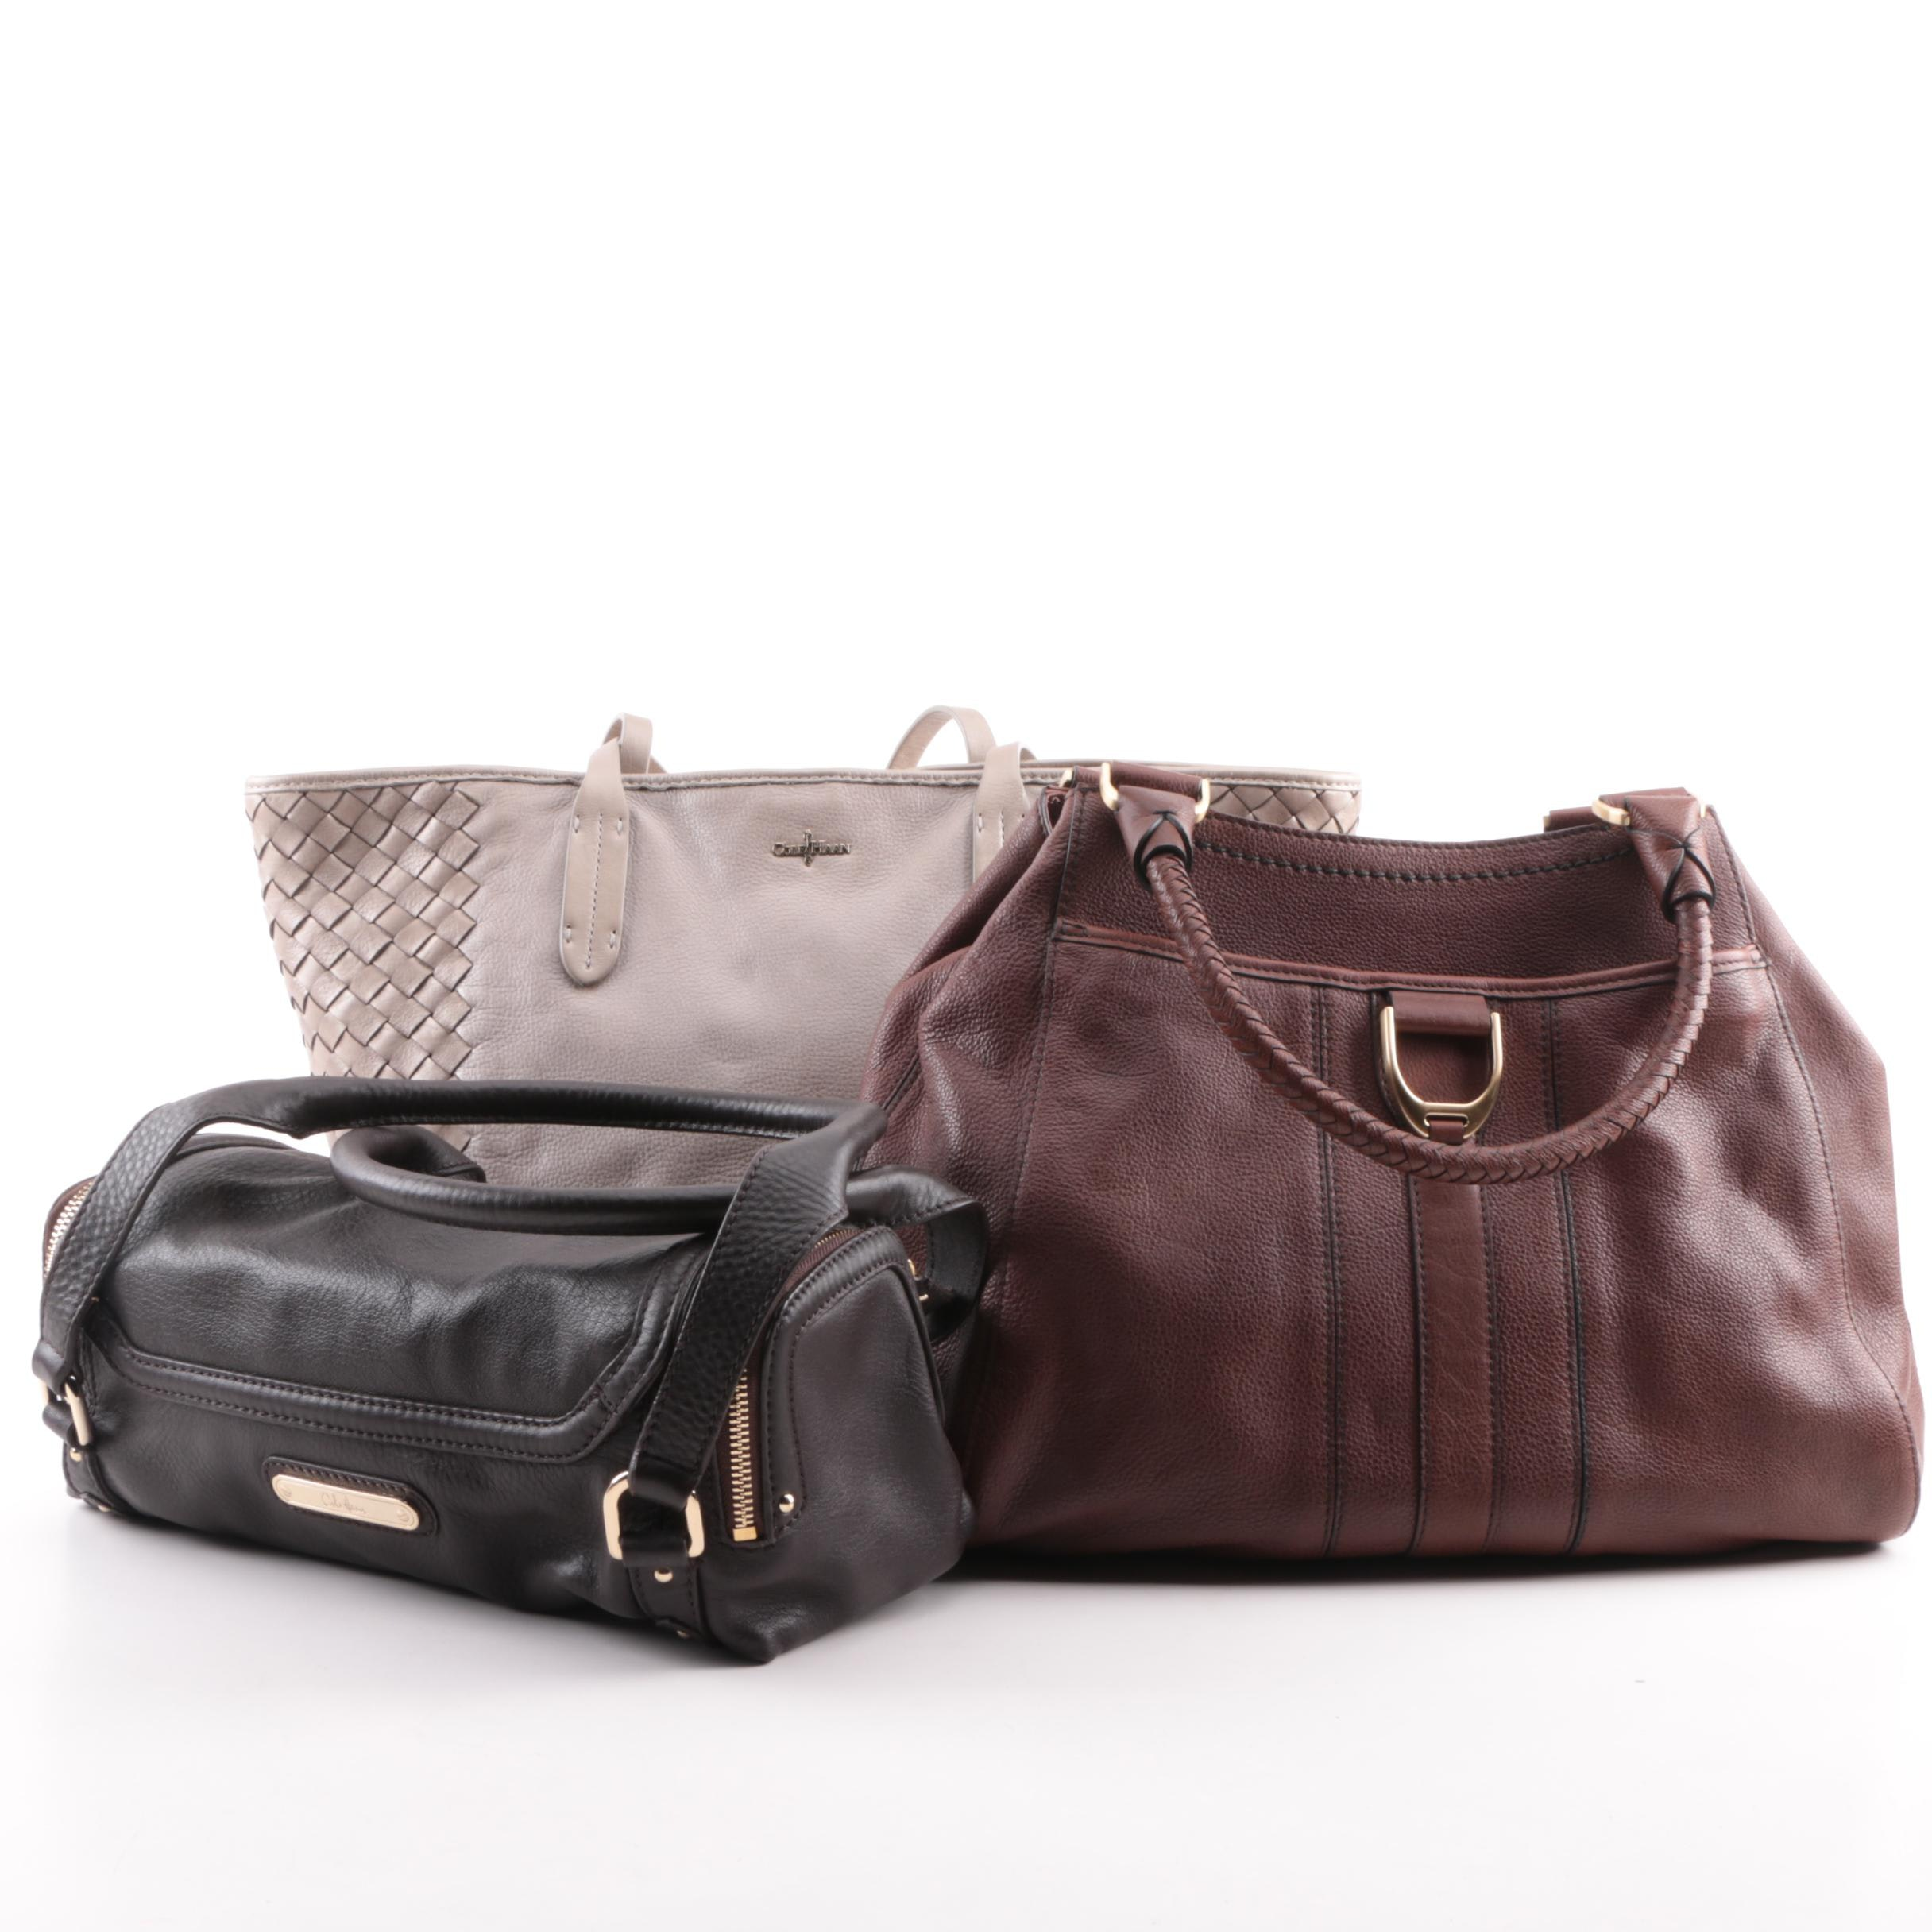 Cole Haan Leather Tote and Shoulder Bags